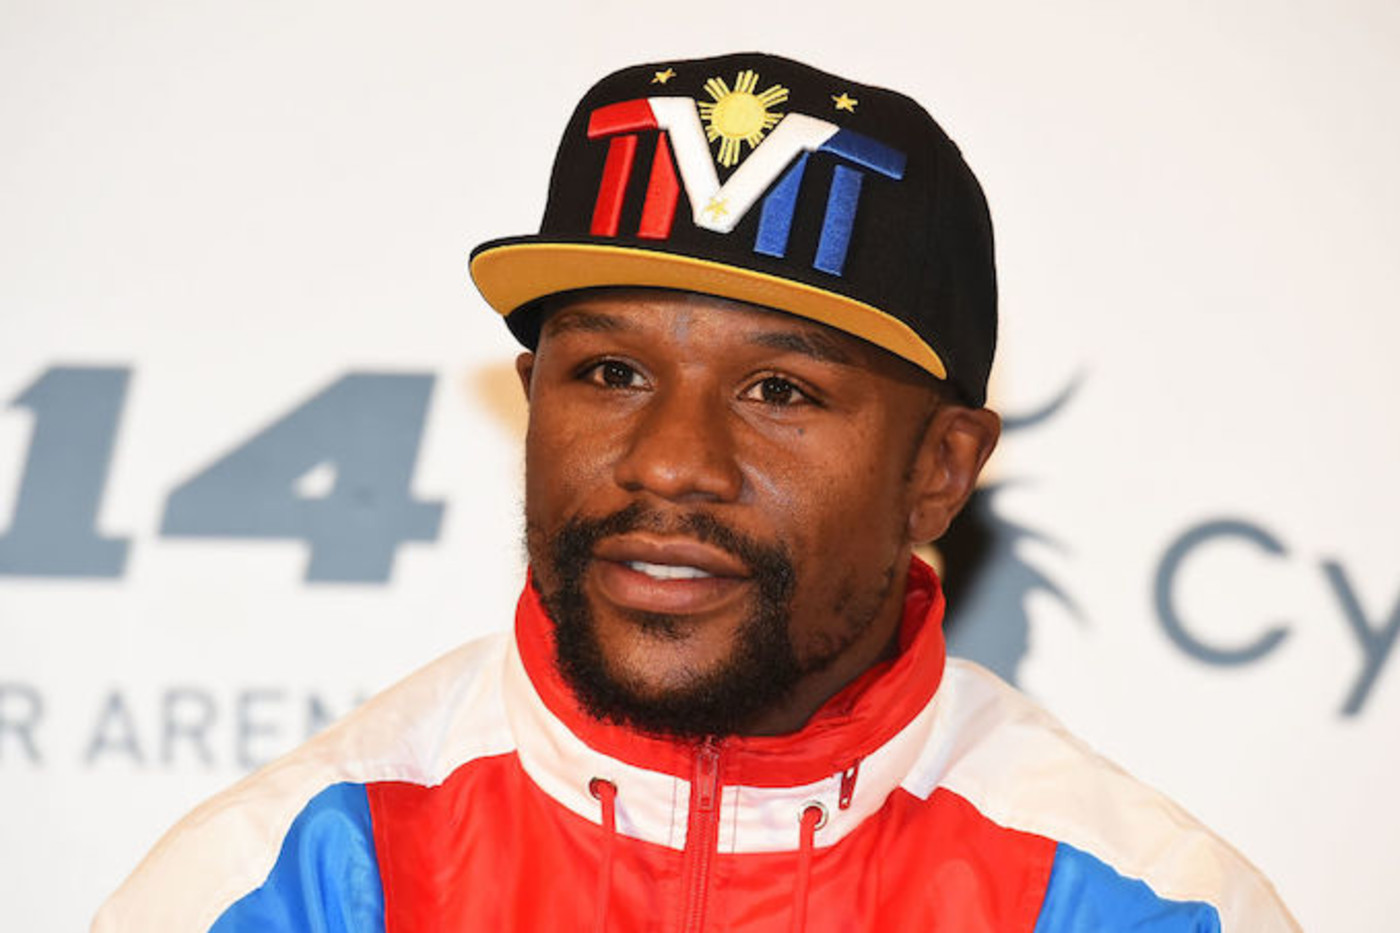 This is a picture of Floyd Mayweather.